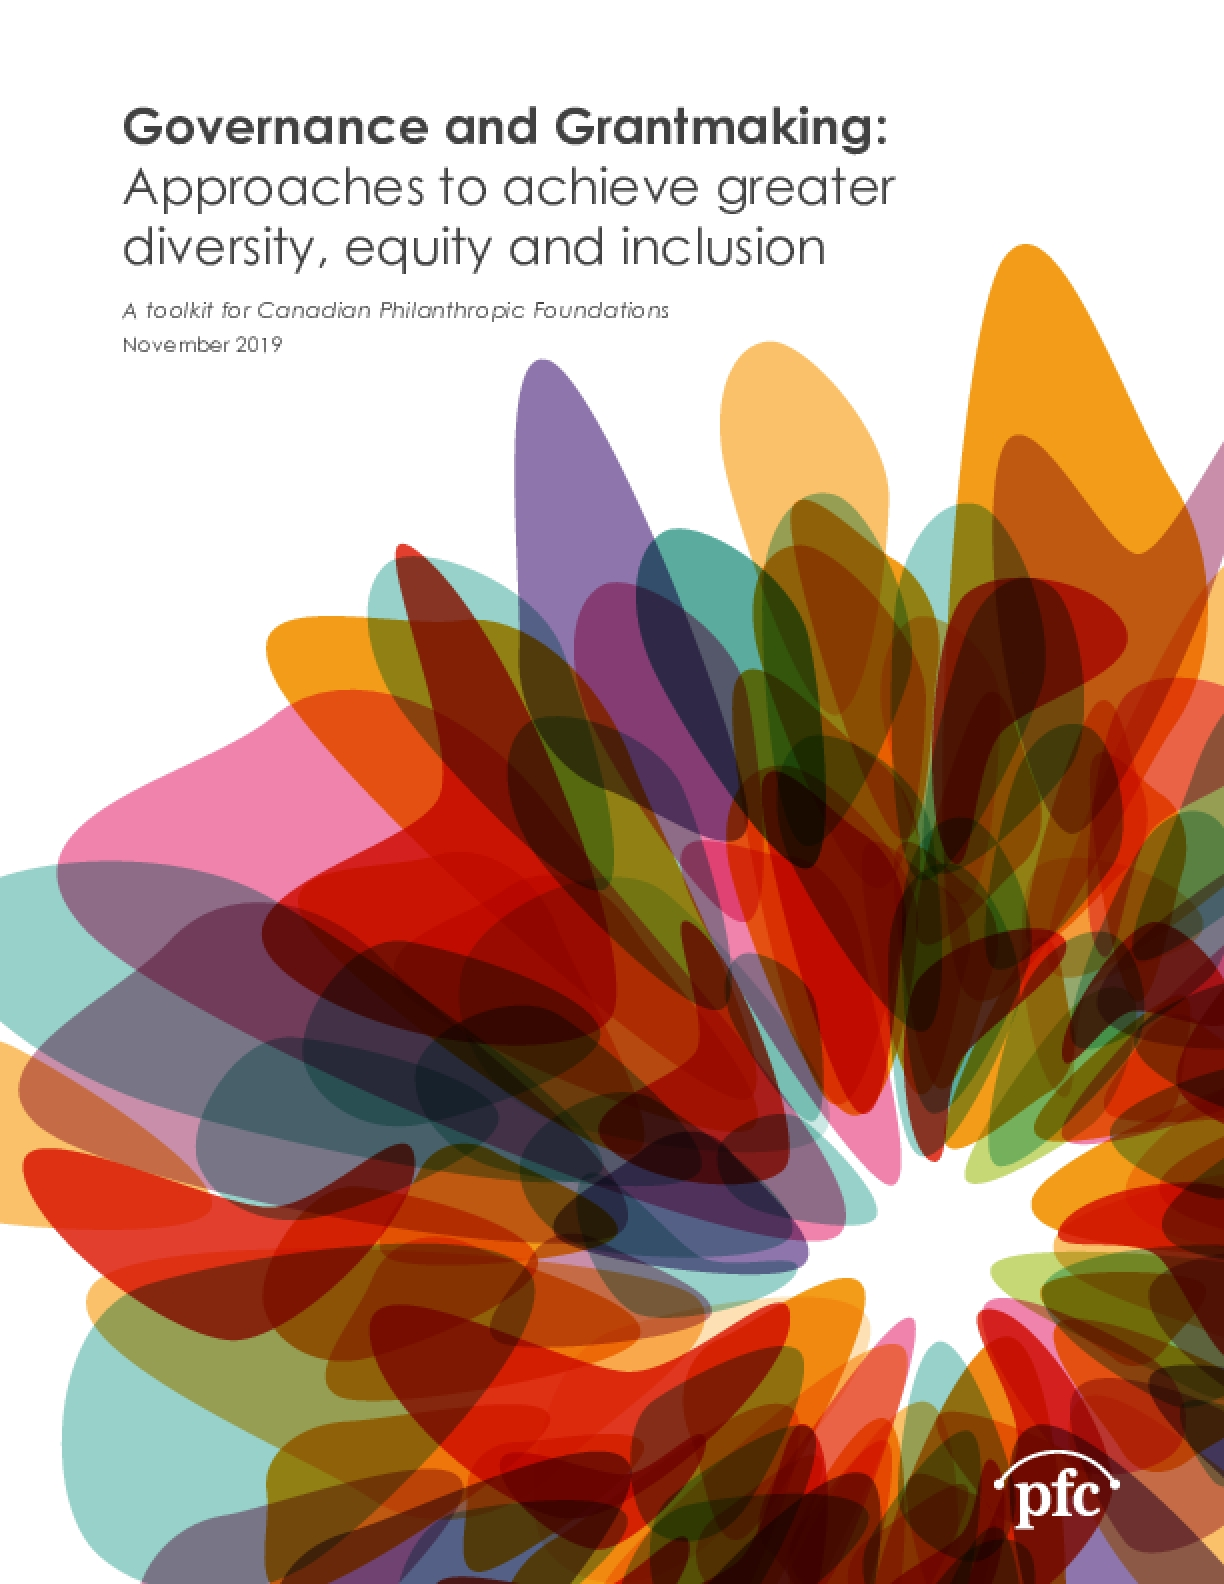 Governance and Grantmaking: Approaches to achieve greater diversity, equity and inclusion